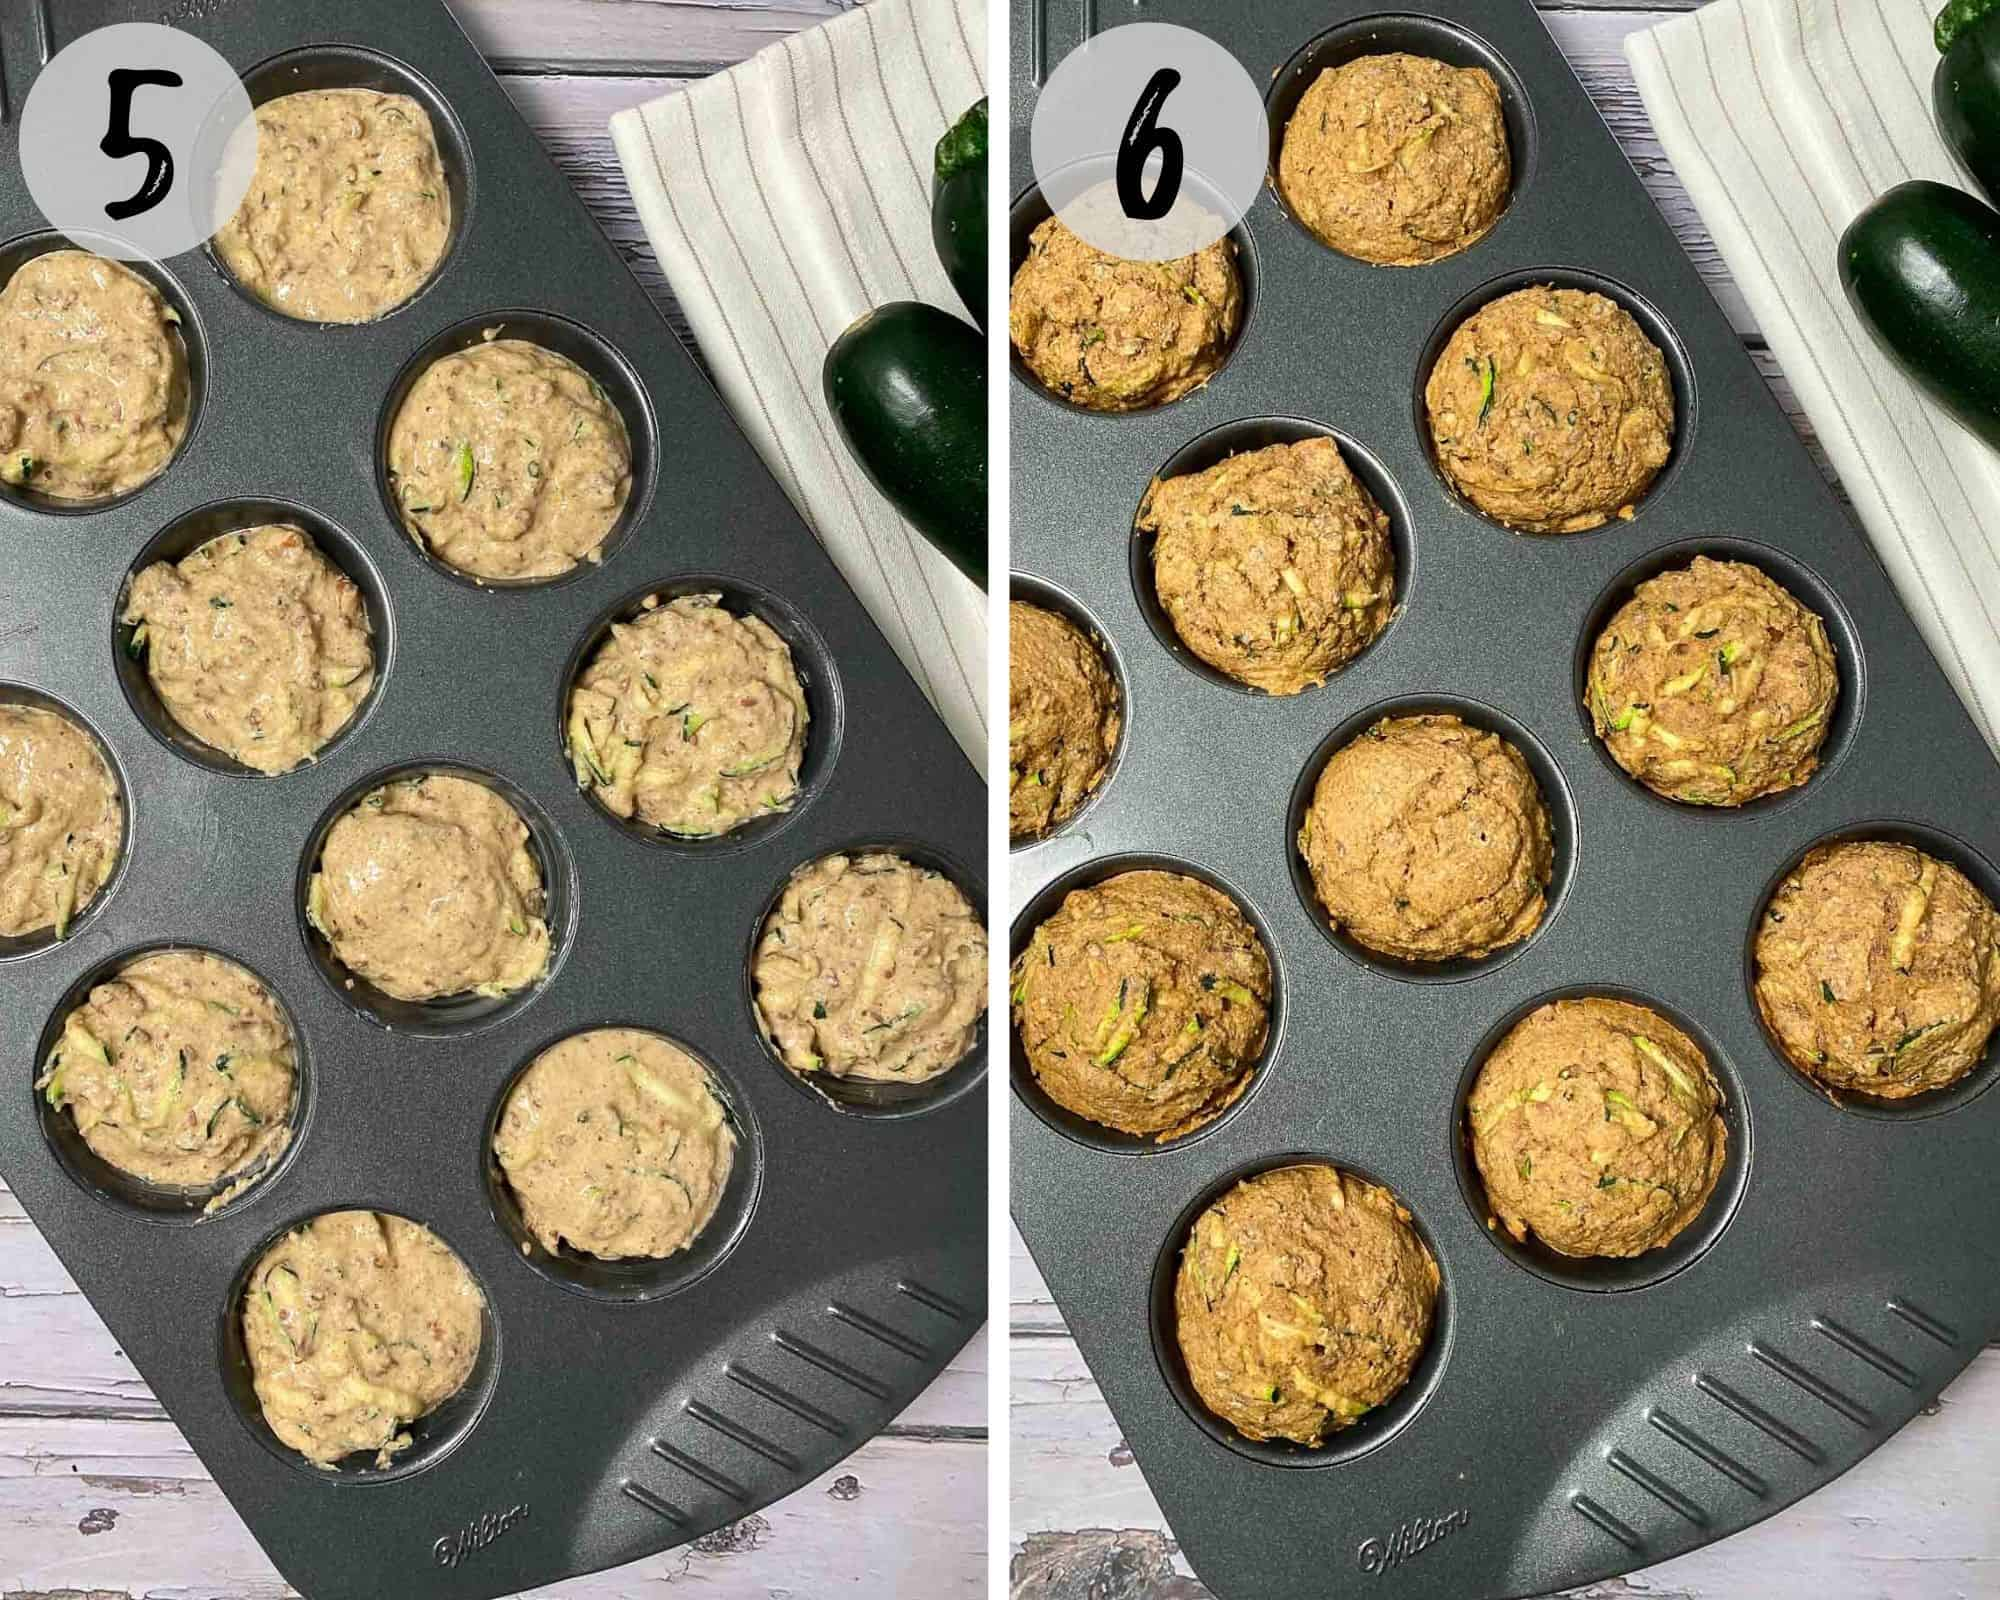 muffin batter in muffin tray before and after baking